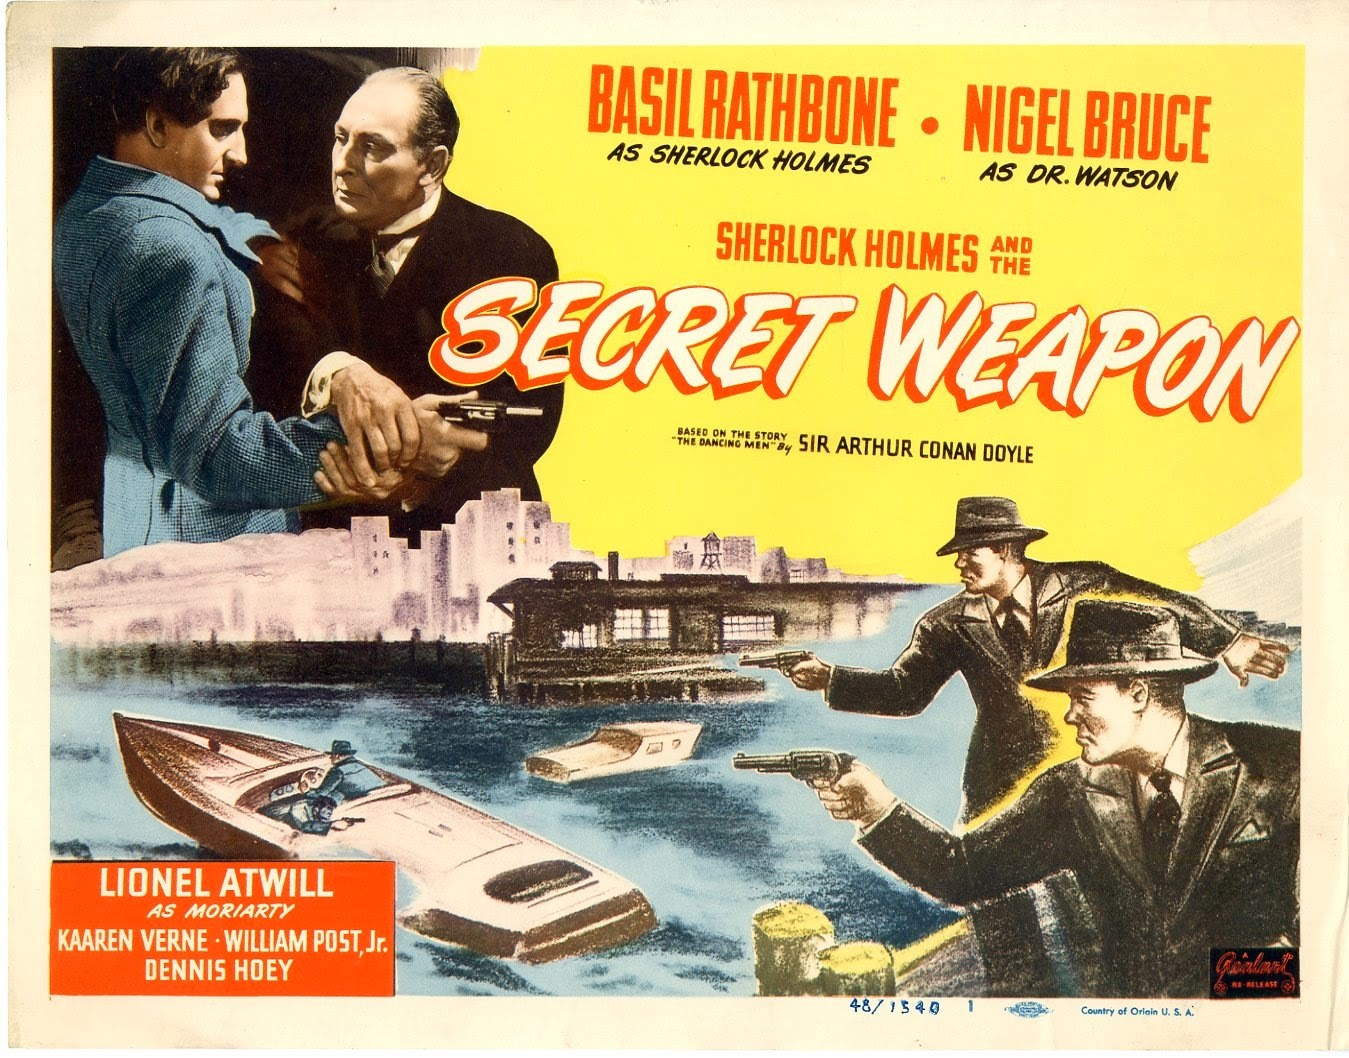 Sherlock Holmes and the Secret Weapon Vintage Movie Poster, Starring Basil Rathbone, Nigel Bruce, and Lionel Atwill